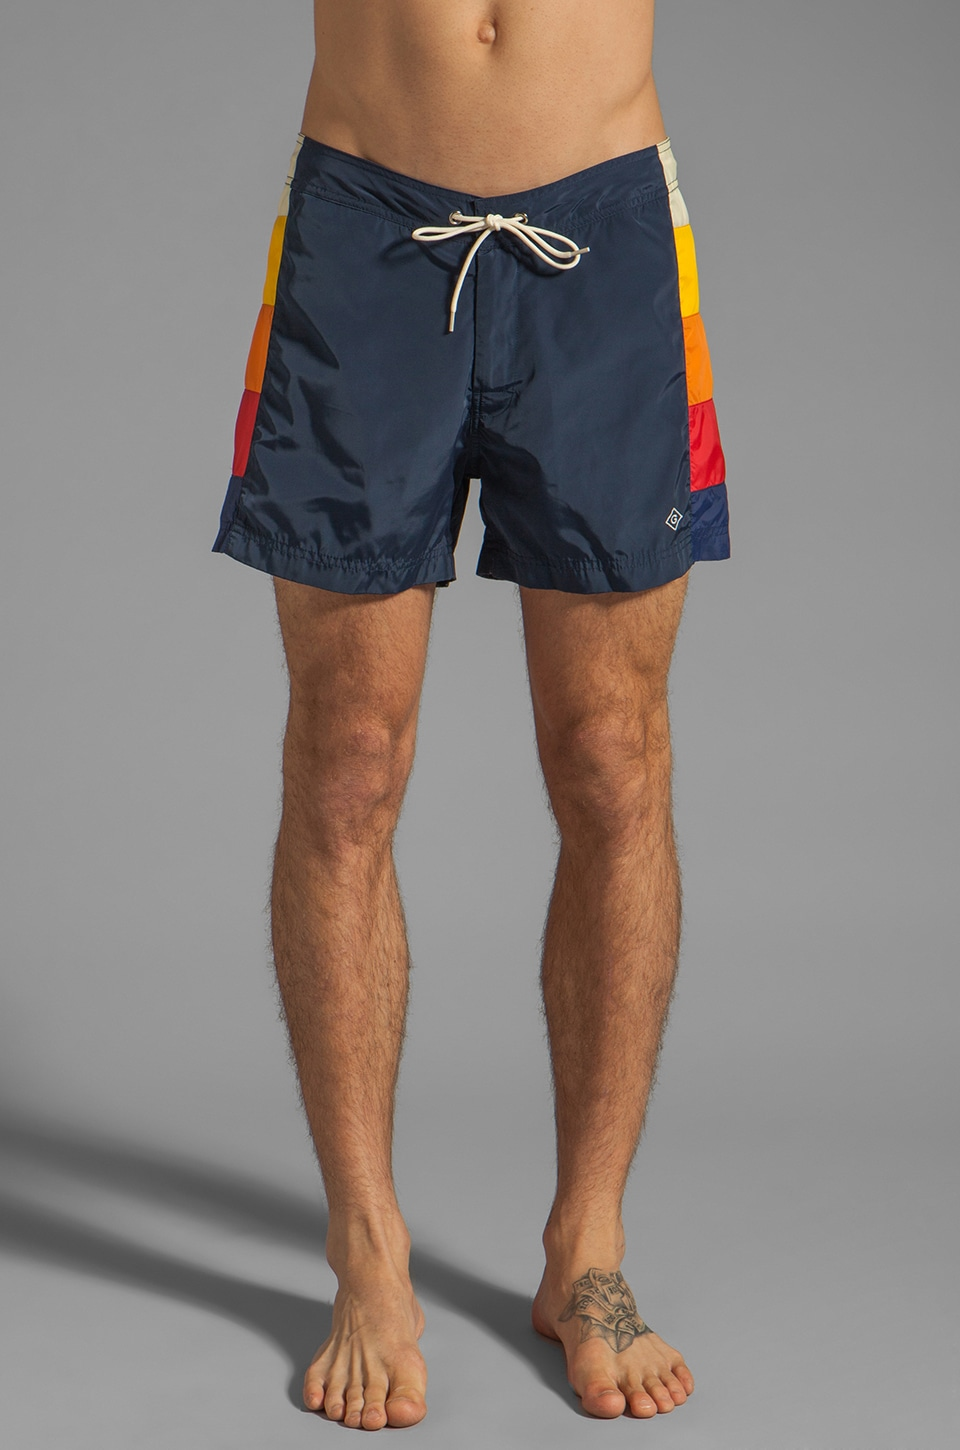 GANT Rugger Patch Panel Swimtrunks in Navy